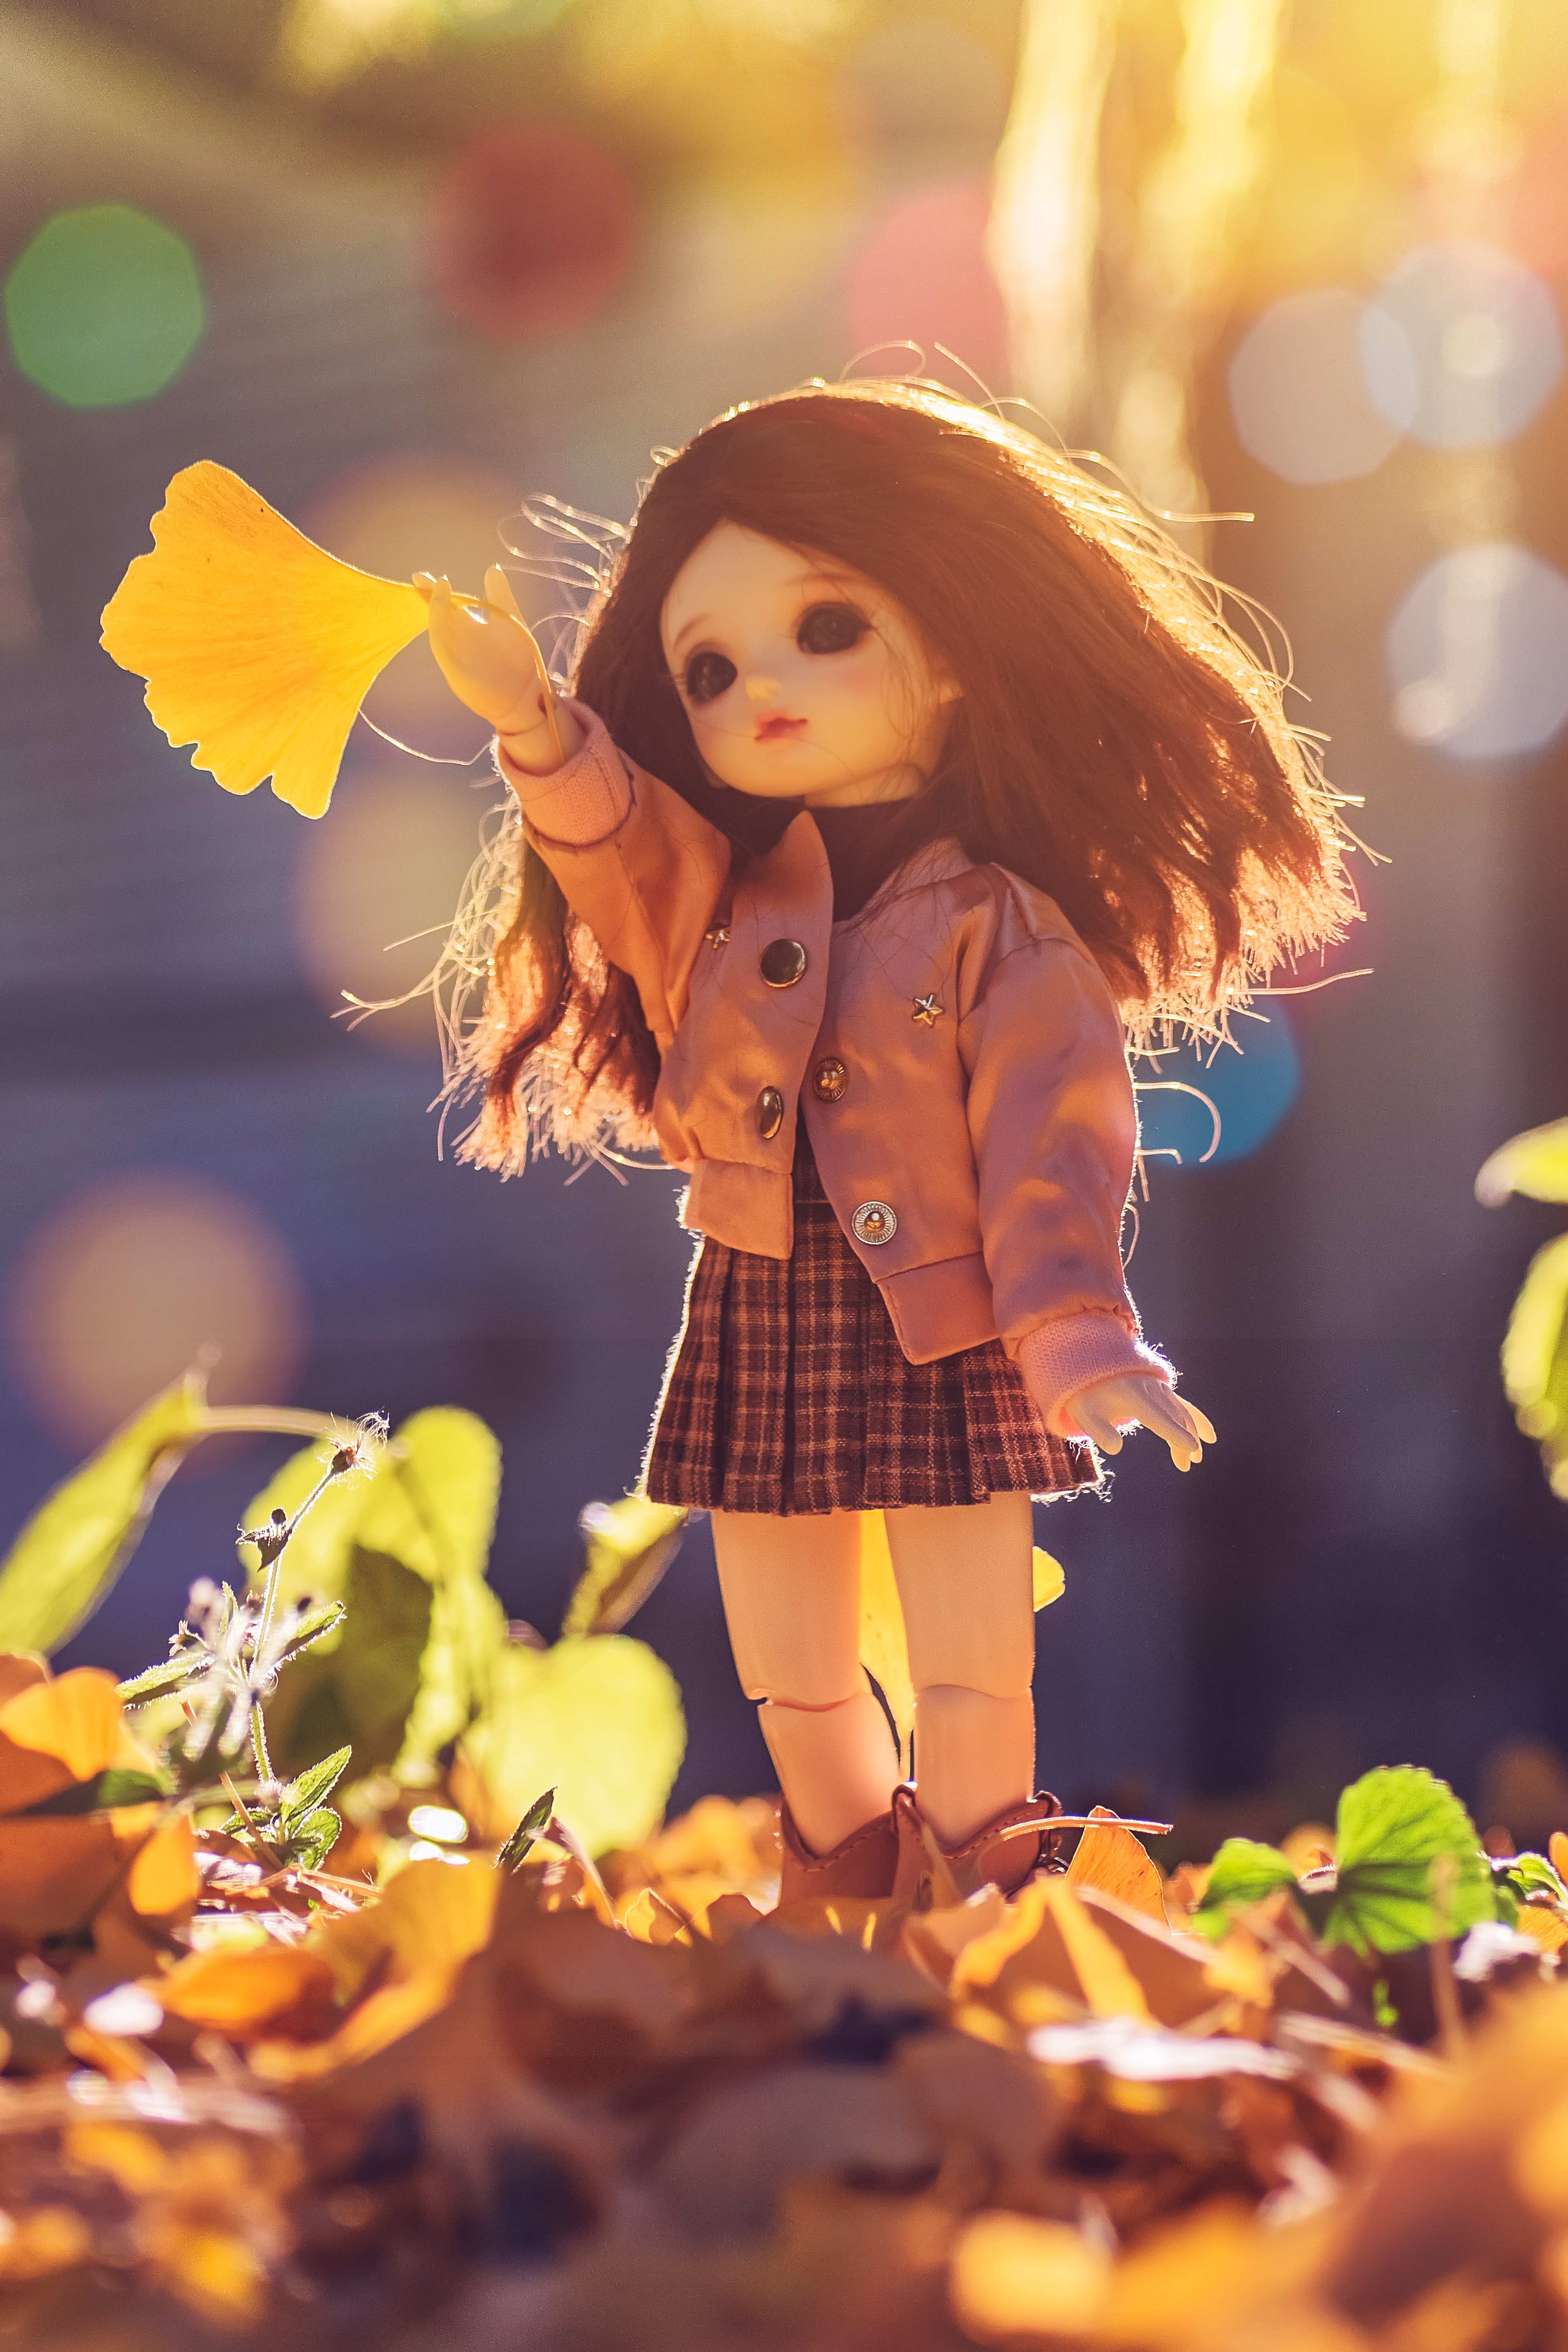 yellow and black dressed female doll